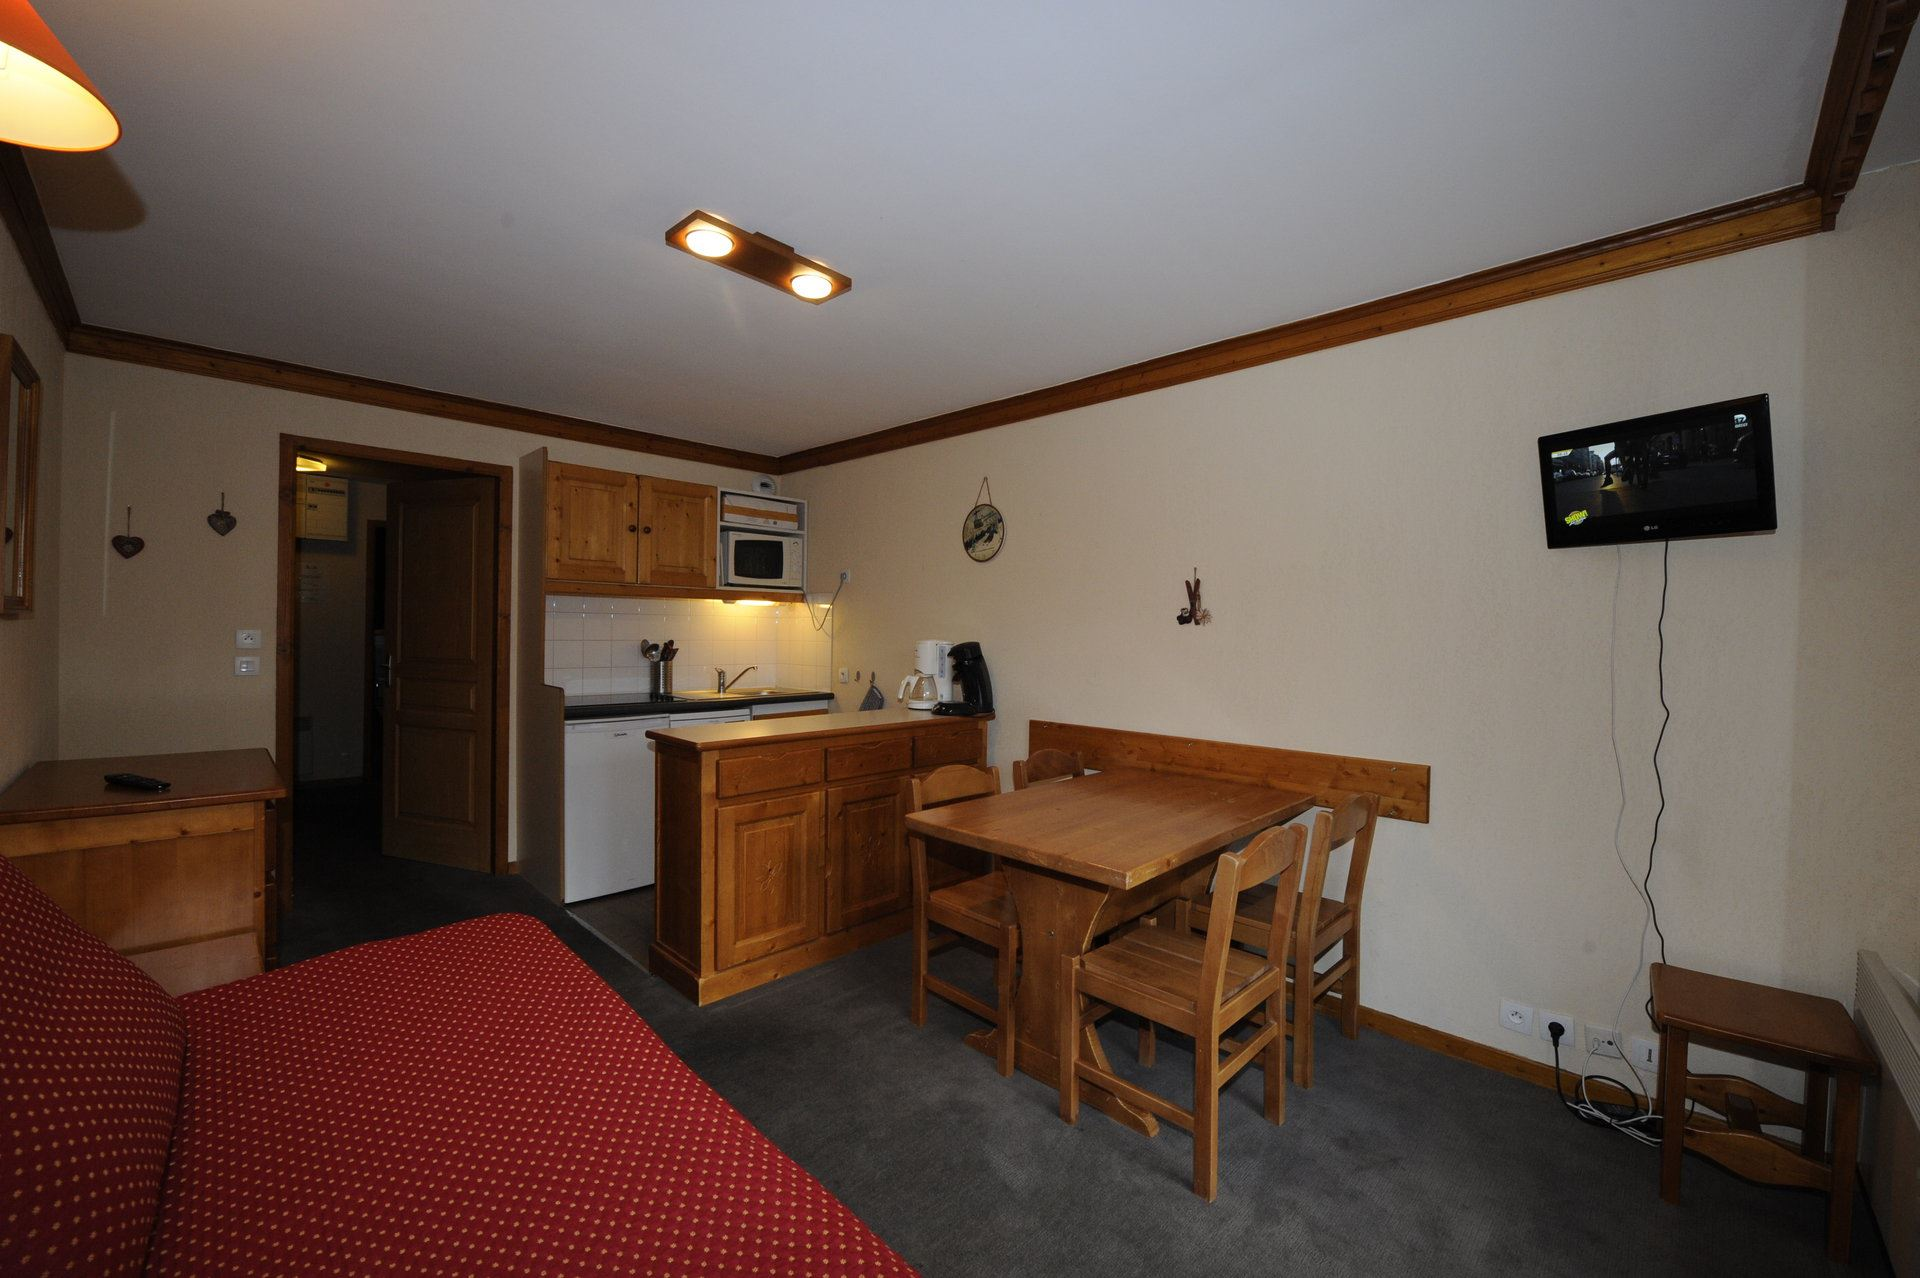 2 Rooms 4 Pers ski-in ski-out / VALMONT 713